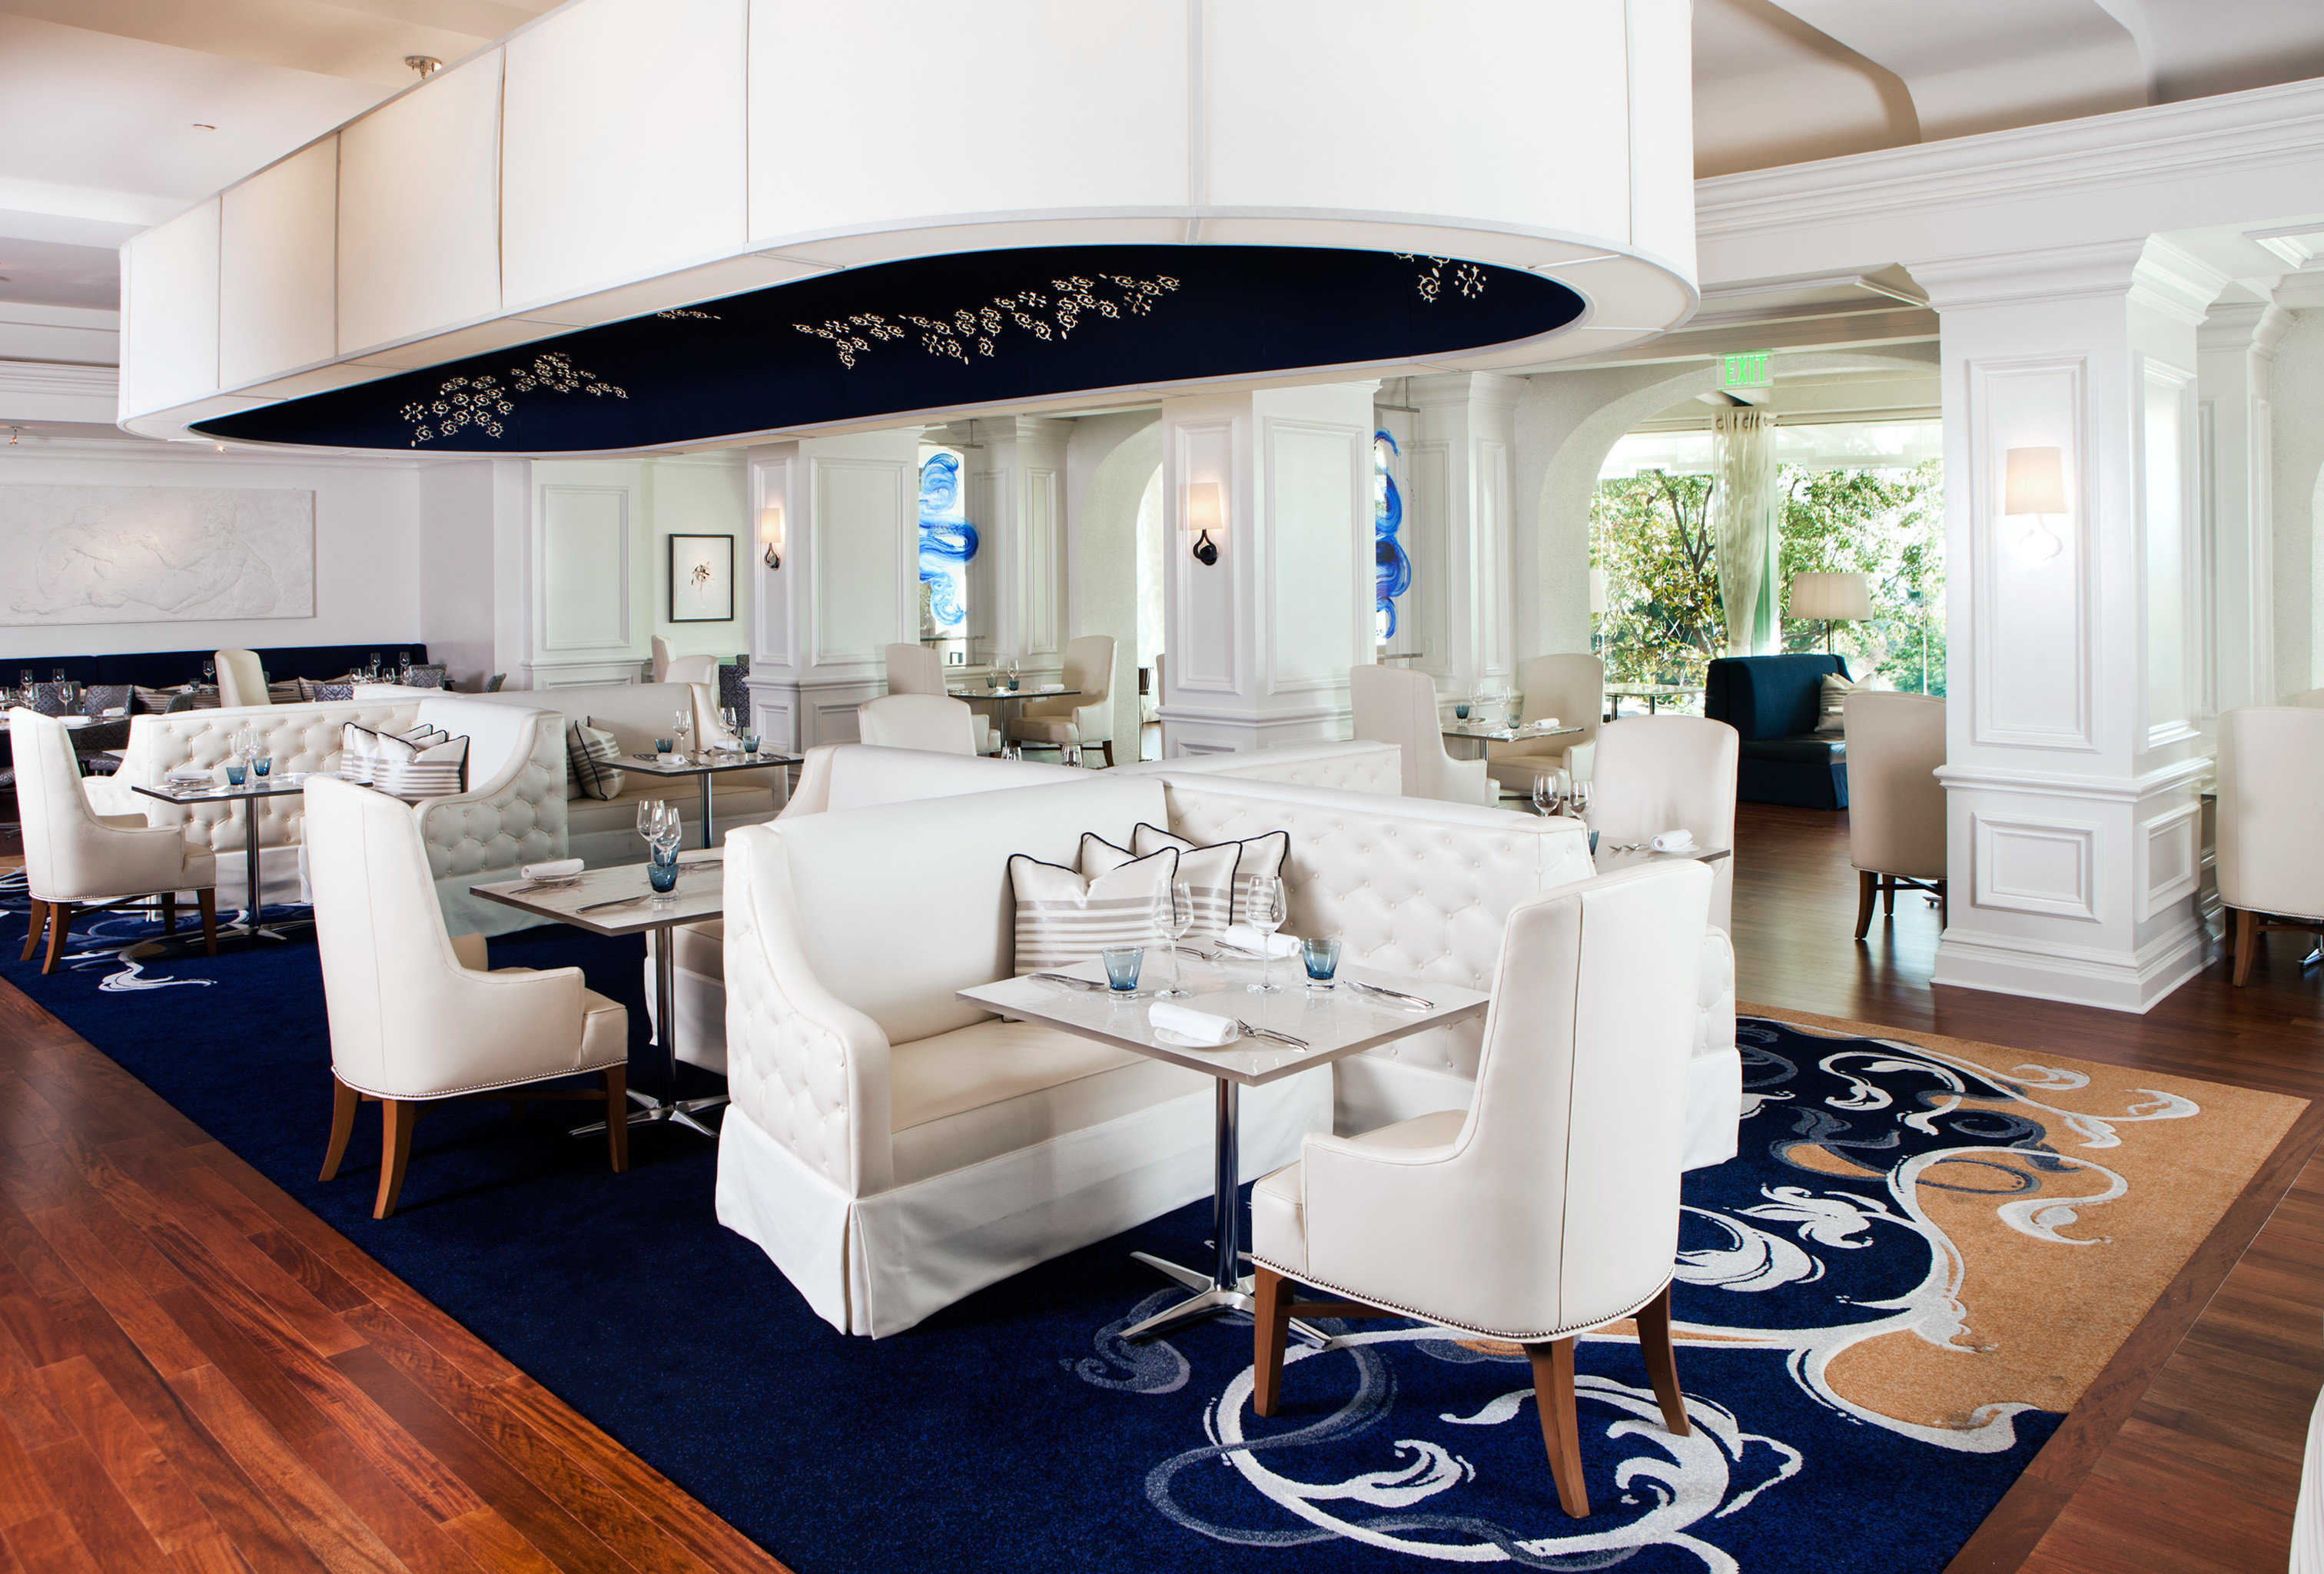 Classic Dining Drink Eat Elegant Luxury property living room Boat home yacht passenger ship flooring Suite appliance Island